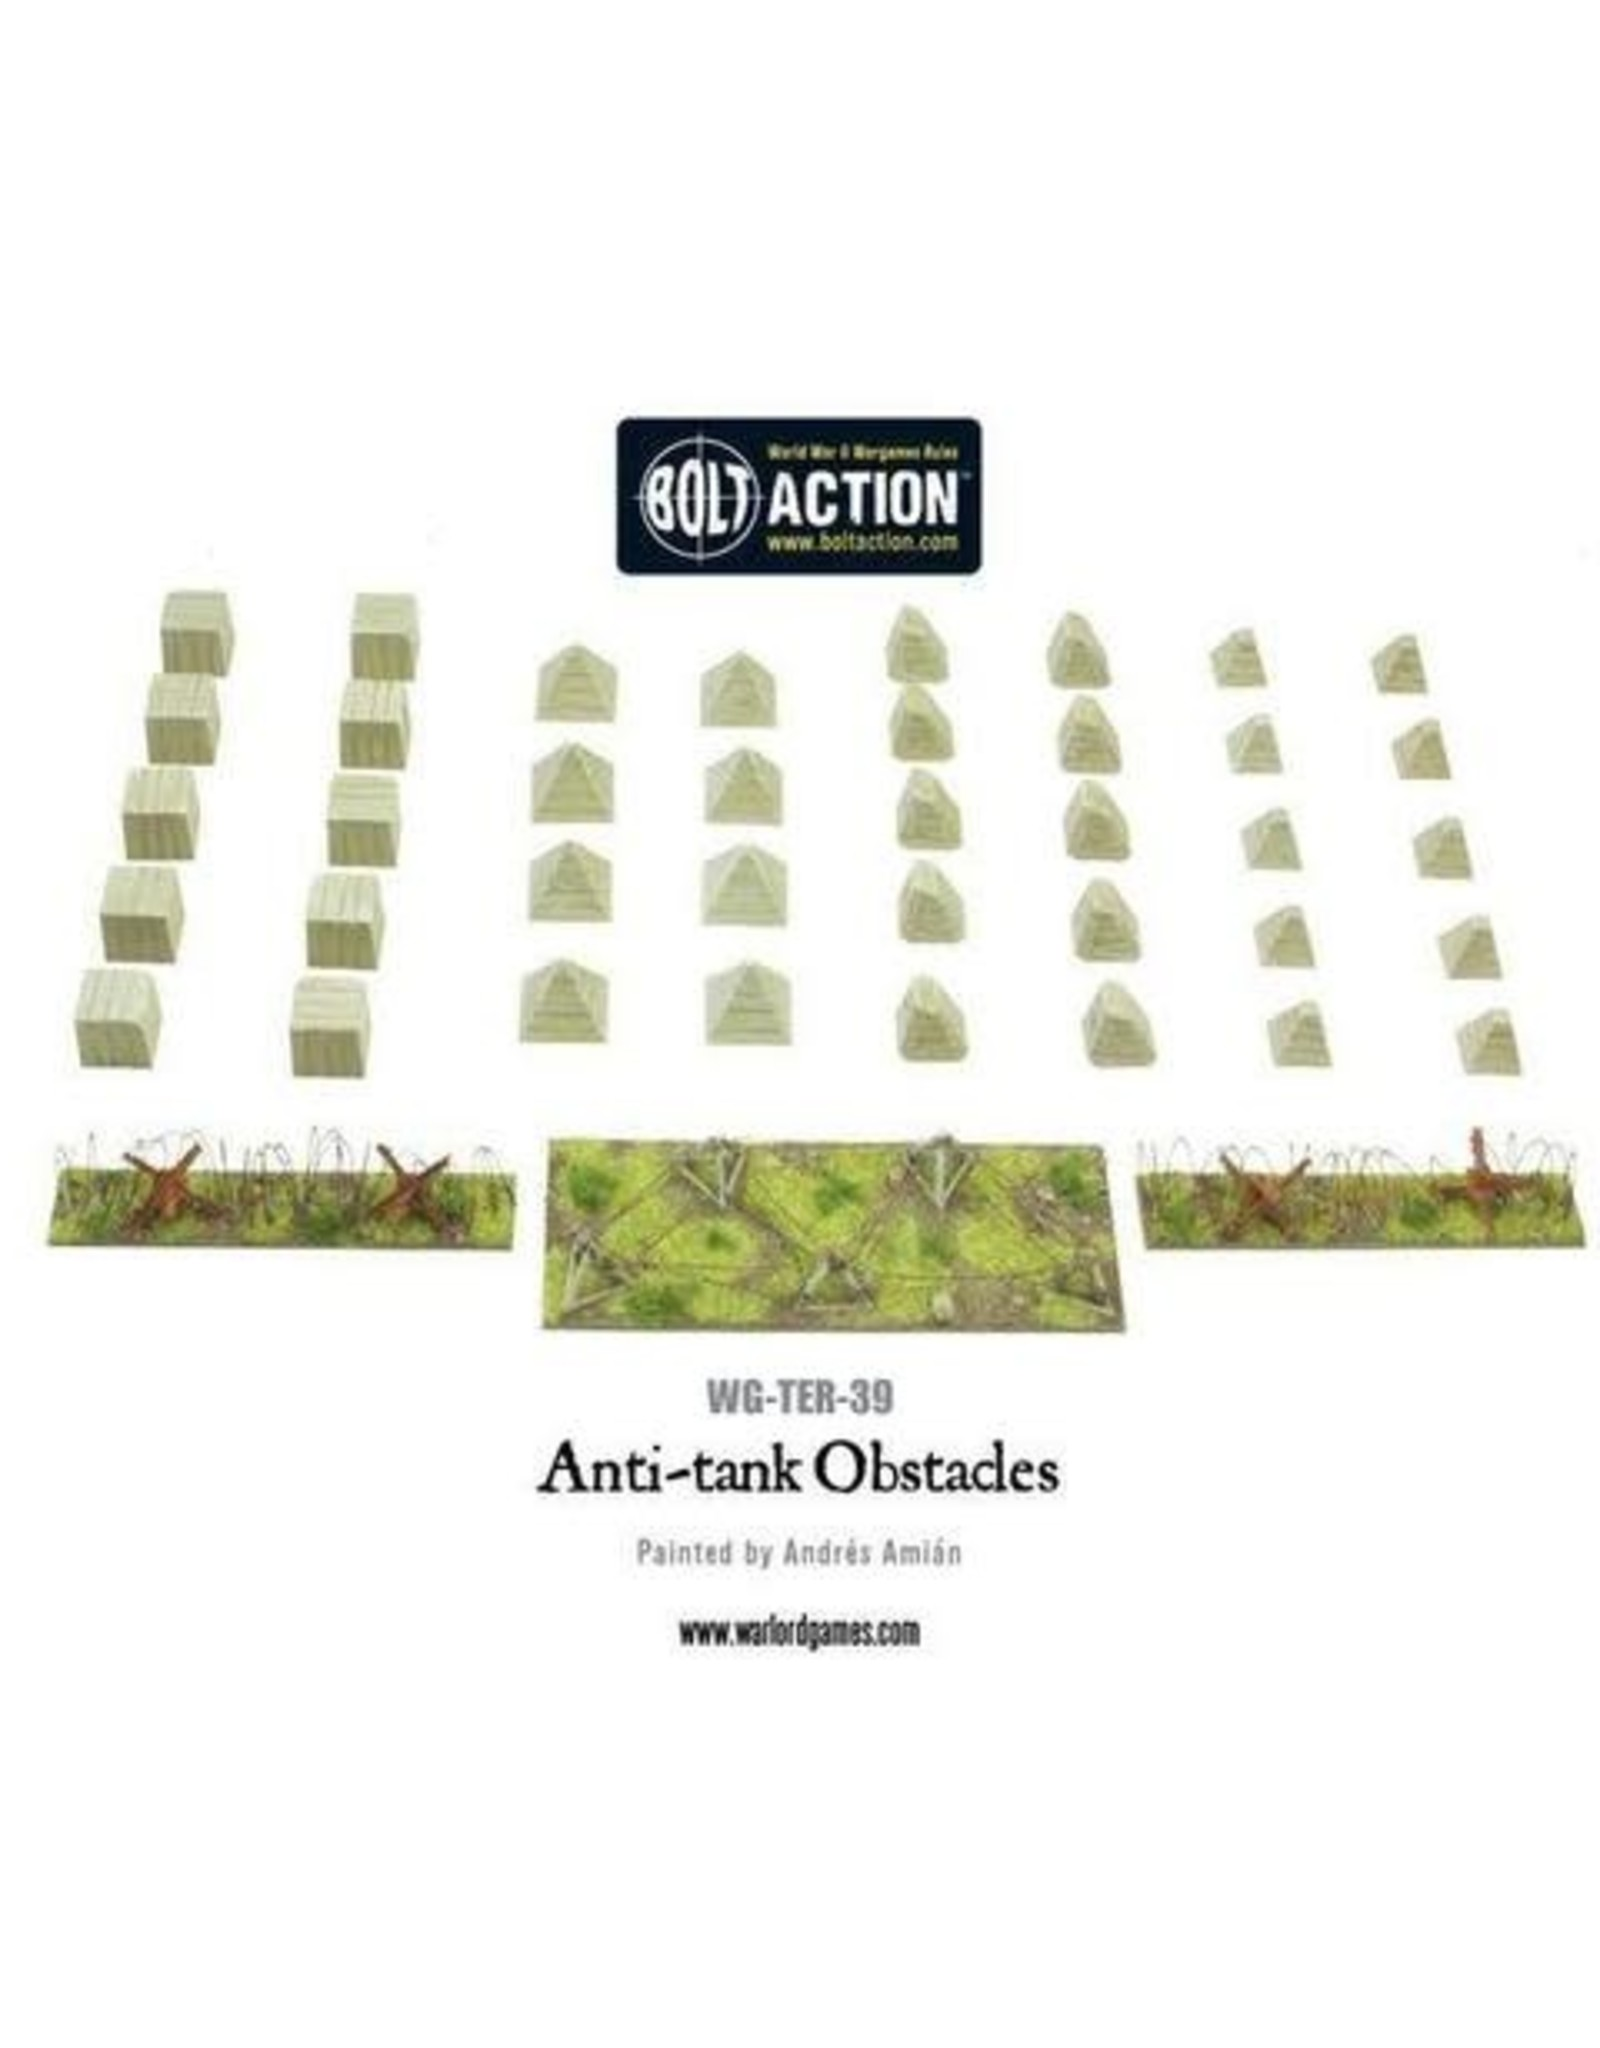 ANTI-TANK OBSTACLES PLASTIC BOXED SET